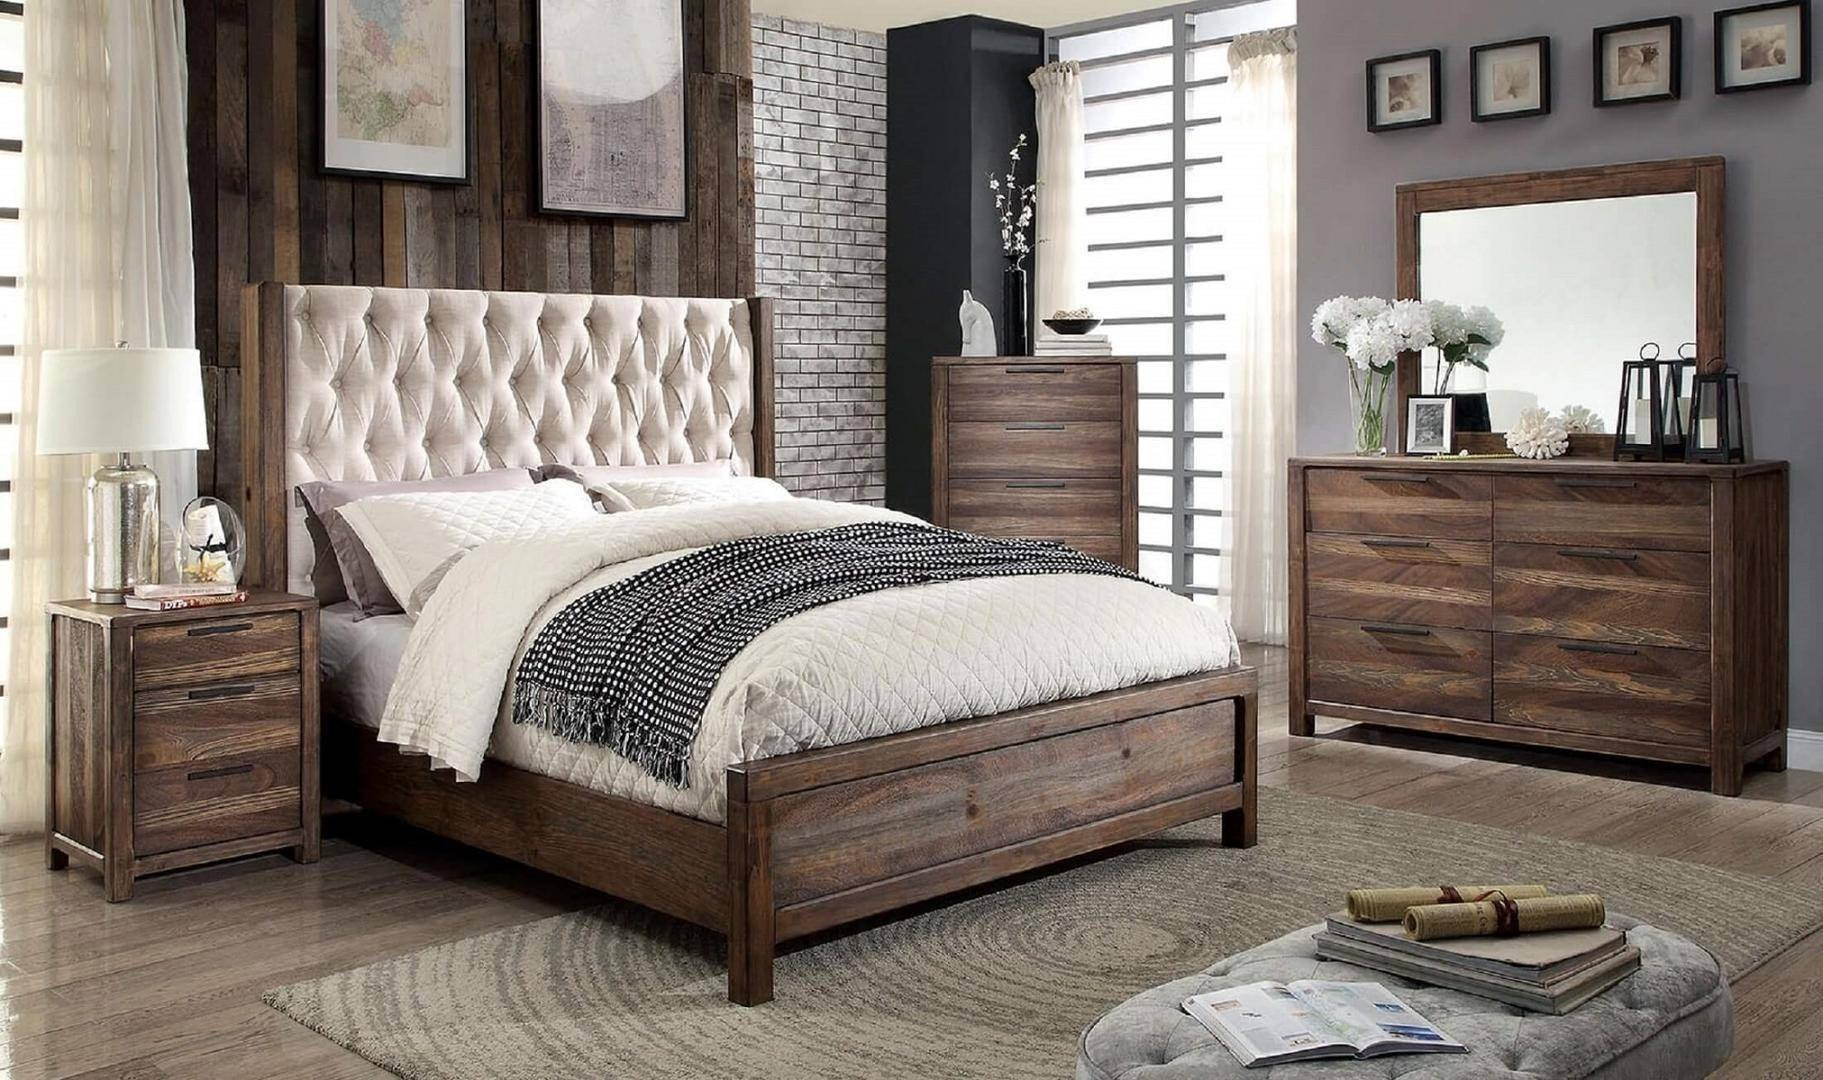 4 Piece Queen Bedroom Set Awesome Rustic Queen Bedroom Set 4 Pcs Brown Hutchinson Furniture Of